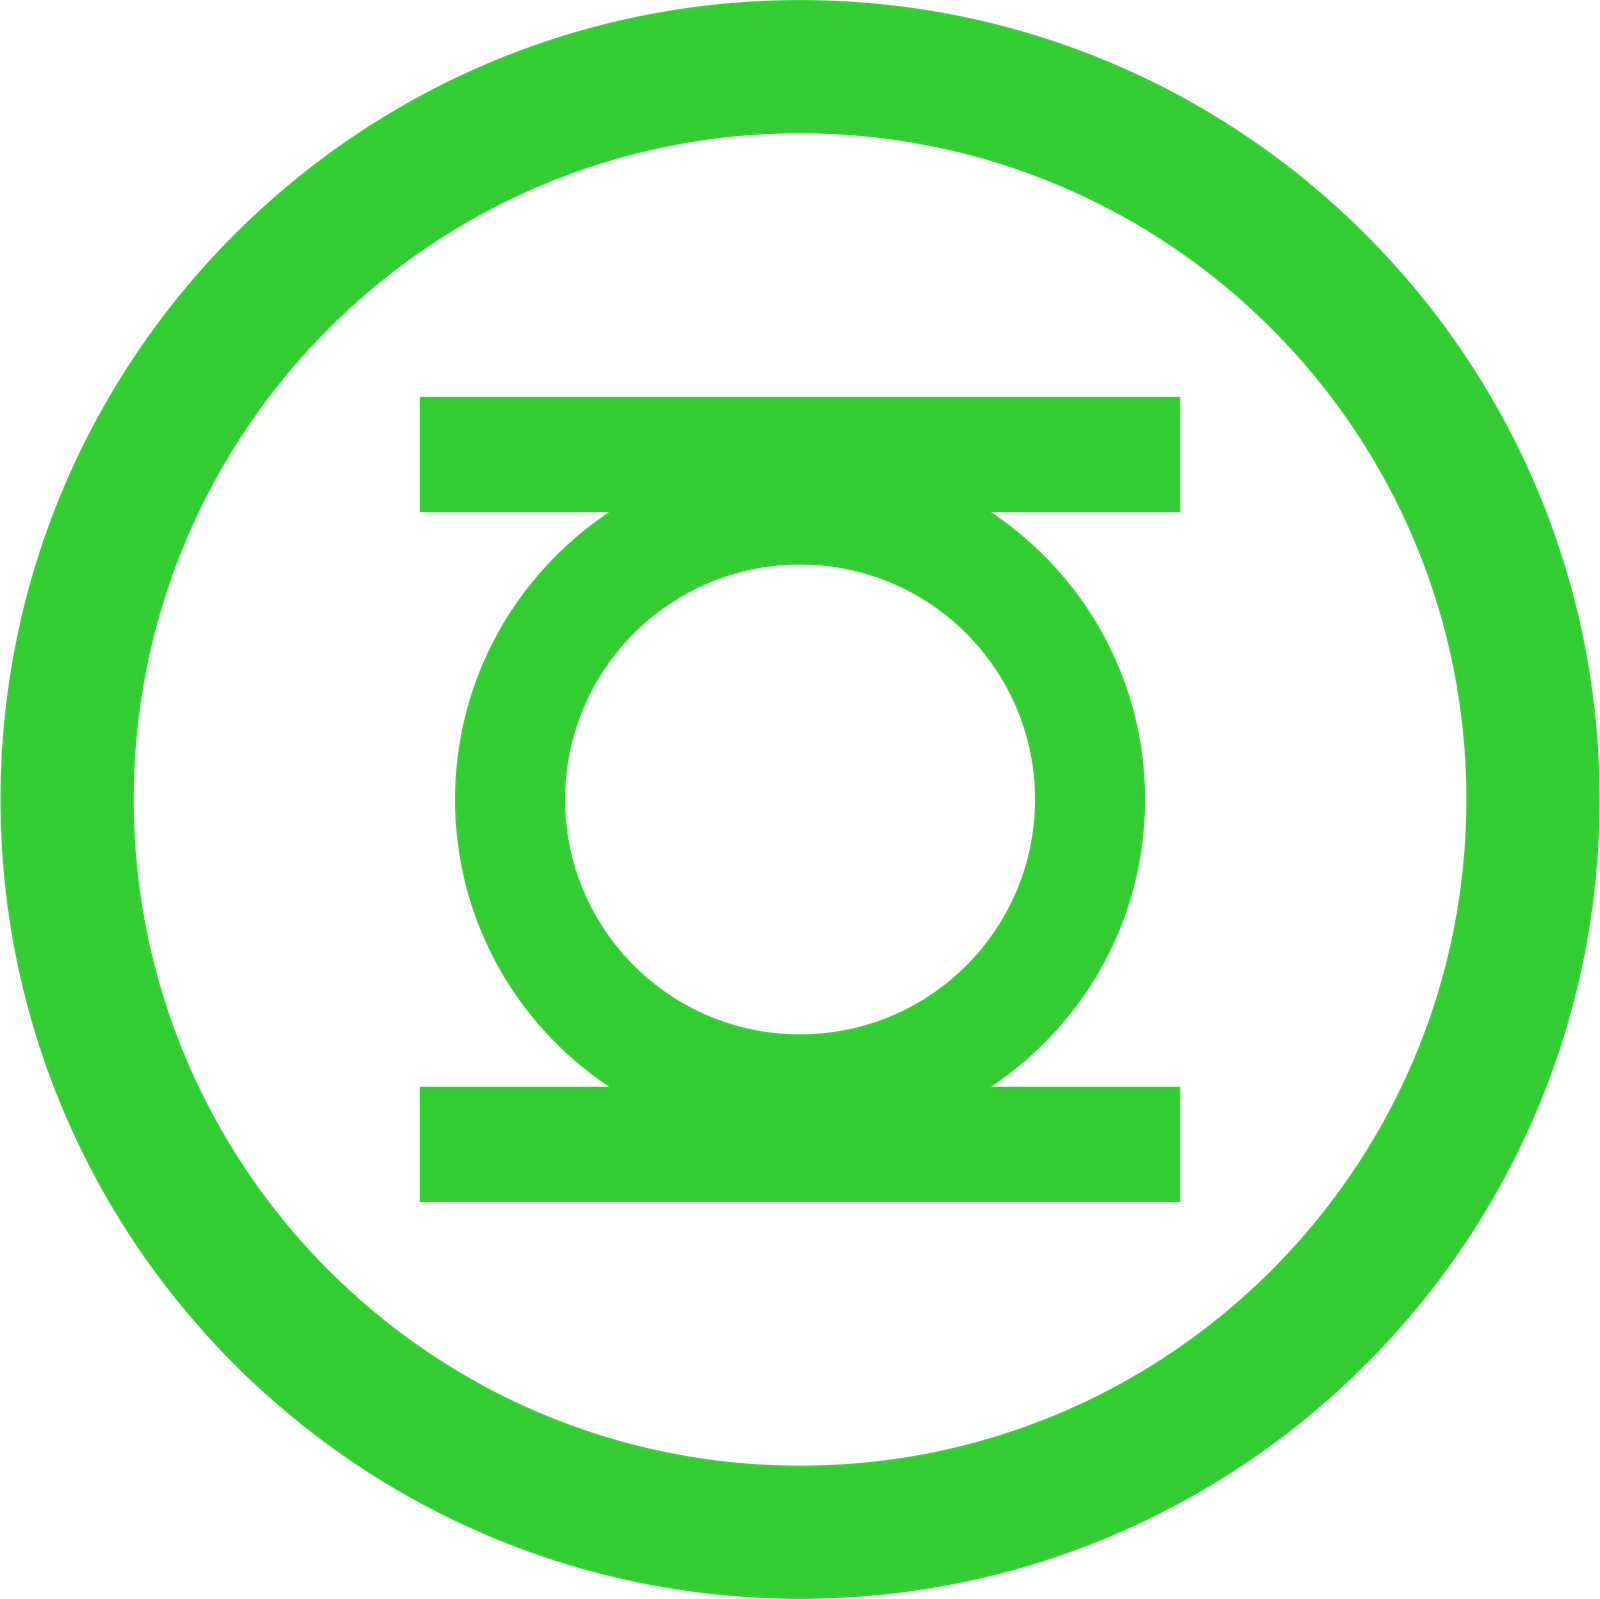 green lantern logo png 10 free Cliparts   Download images ...